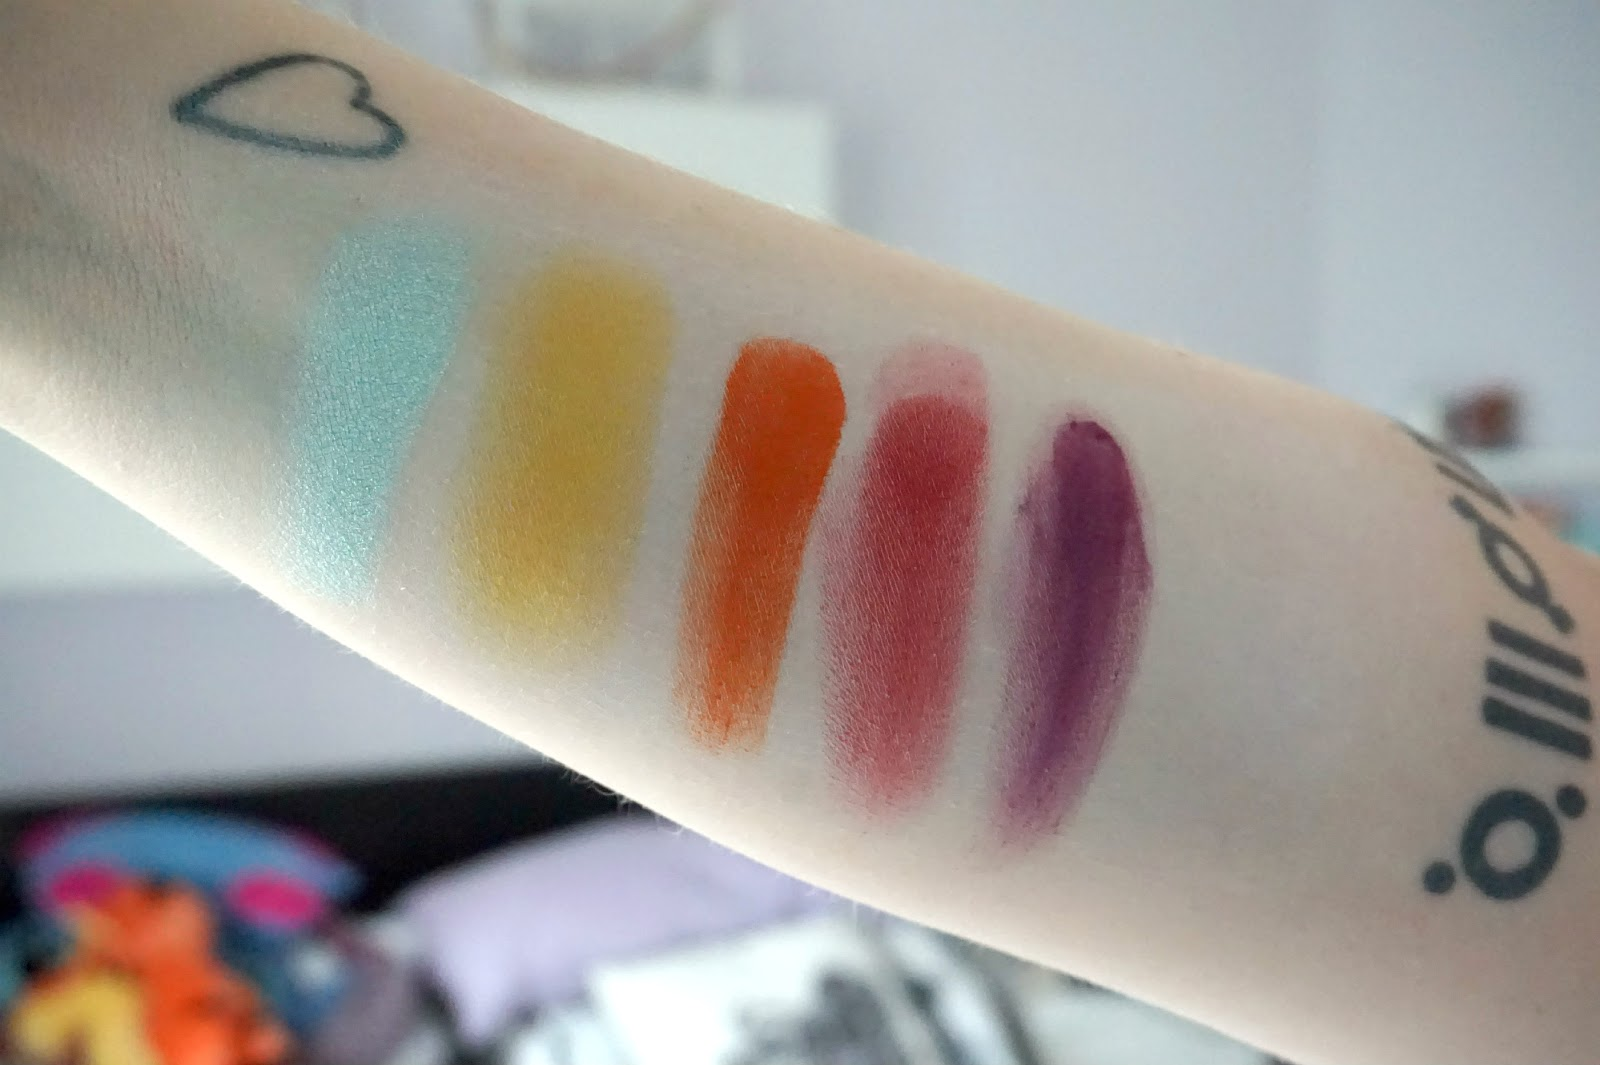 CandyCrush, Buttercupcake, Flamepoint, Love+, 2am, review, swatches, Sugarpill eyeshadows